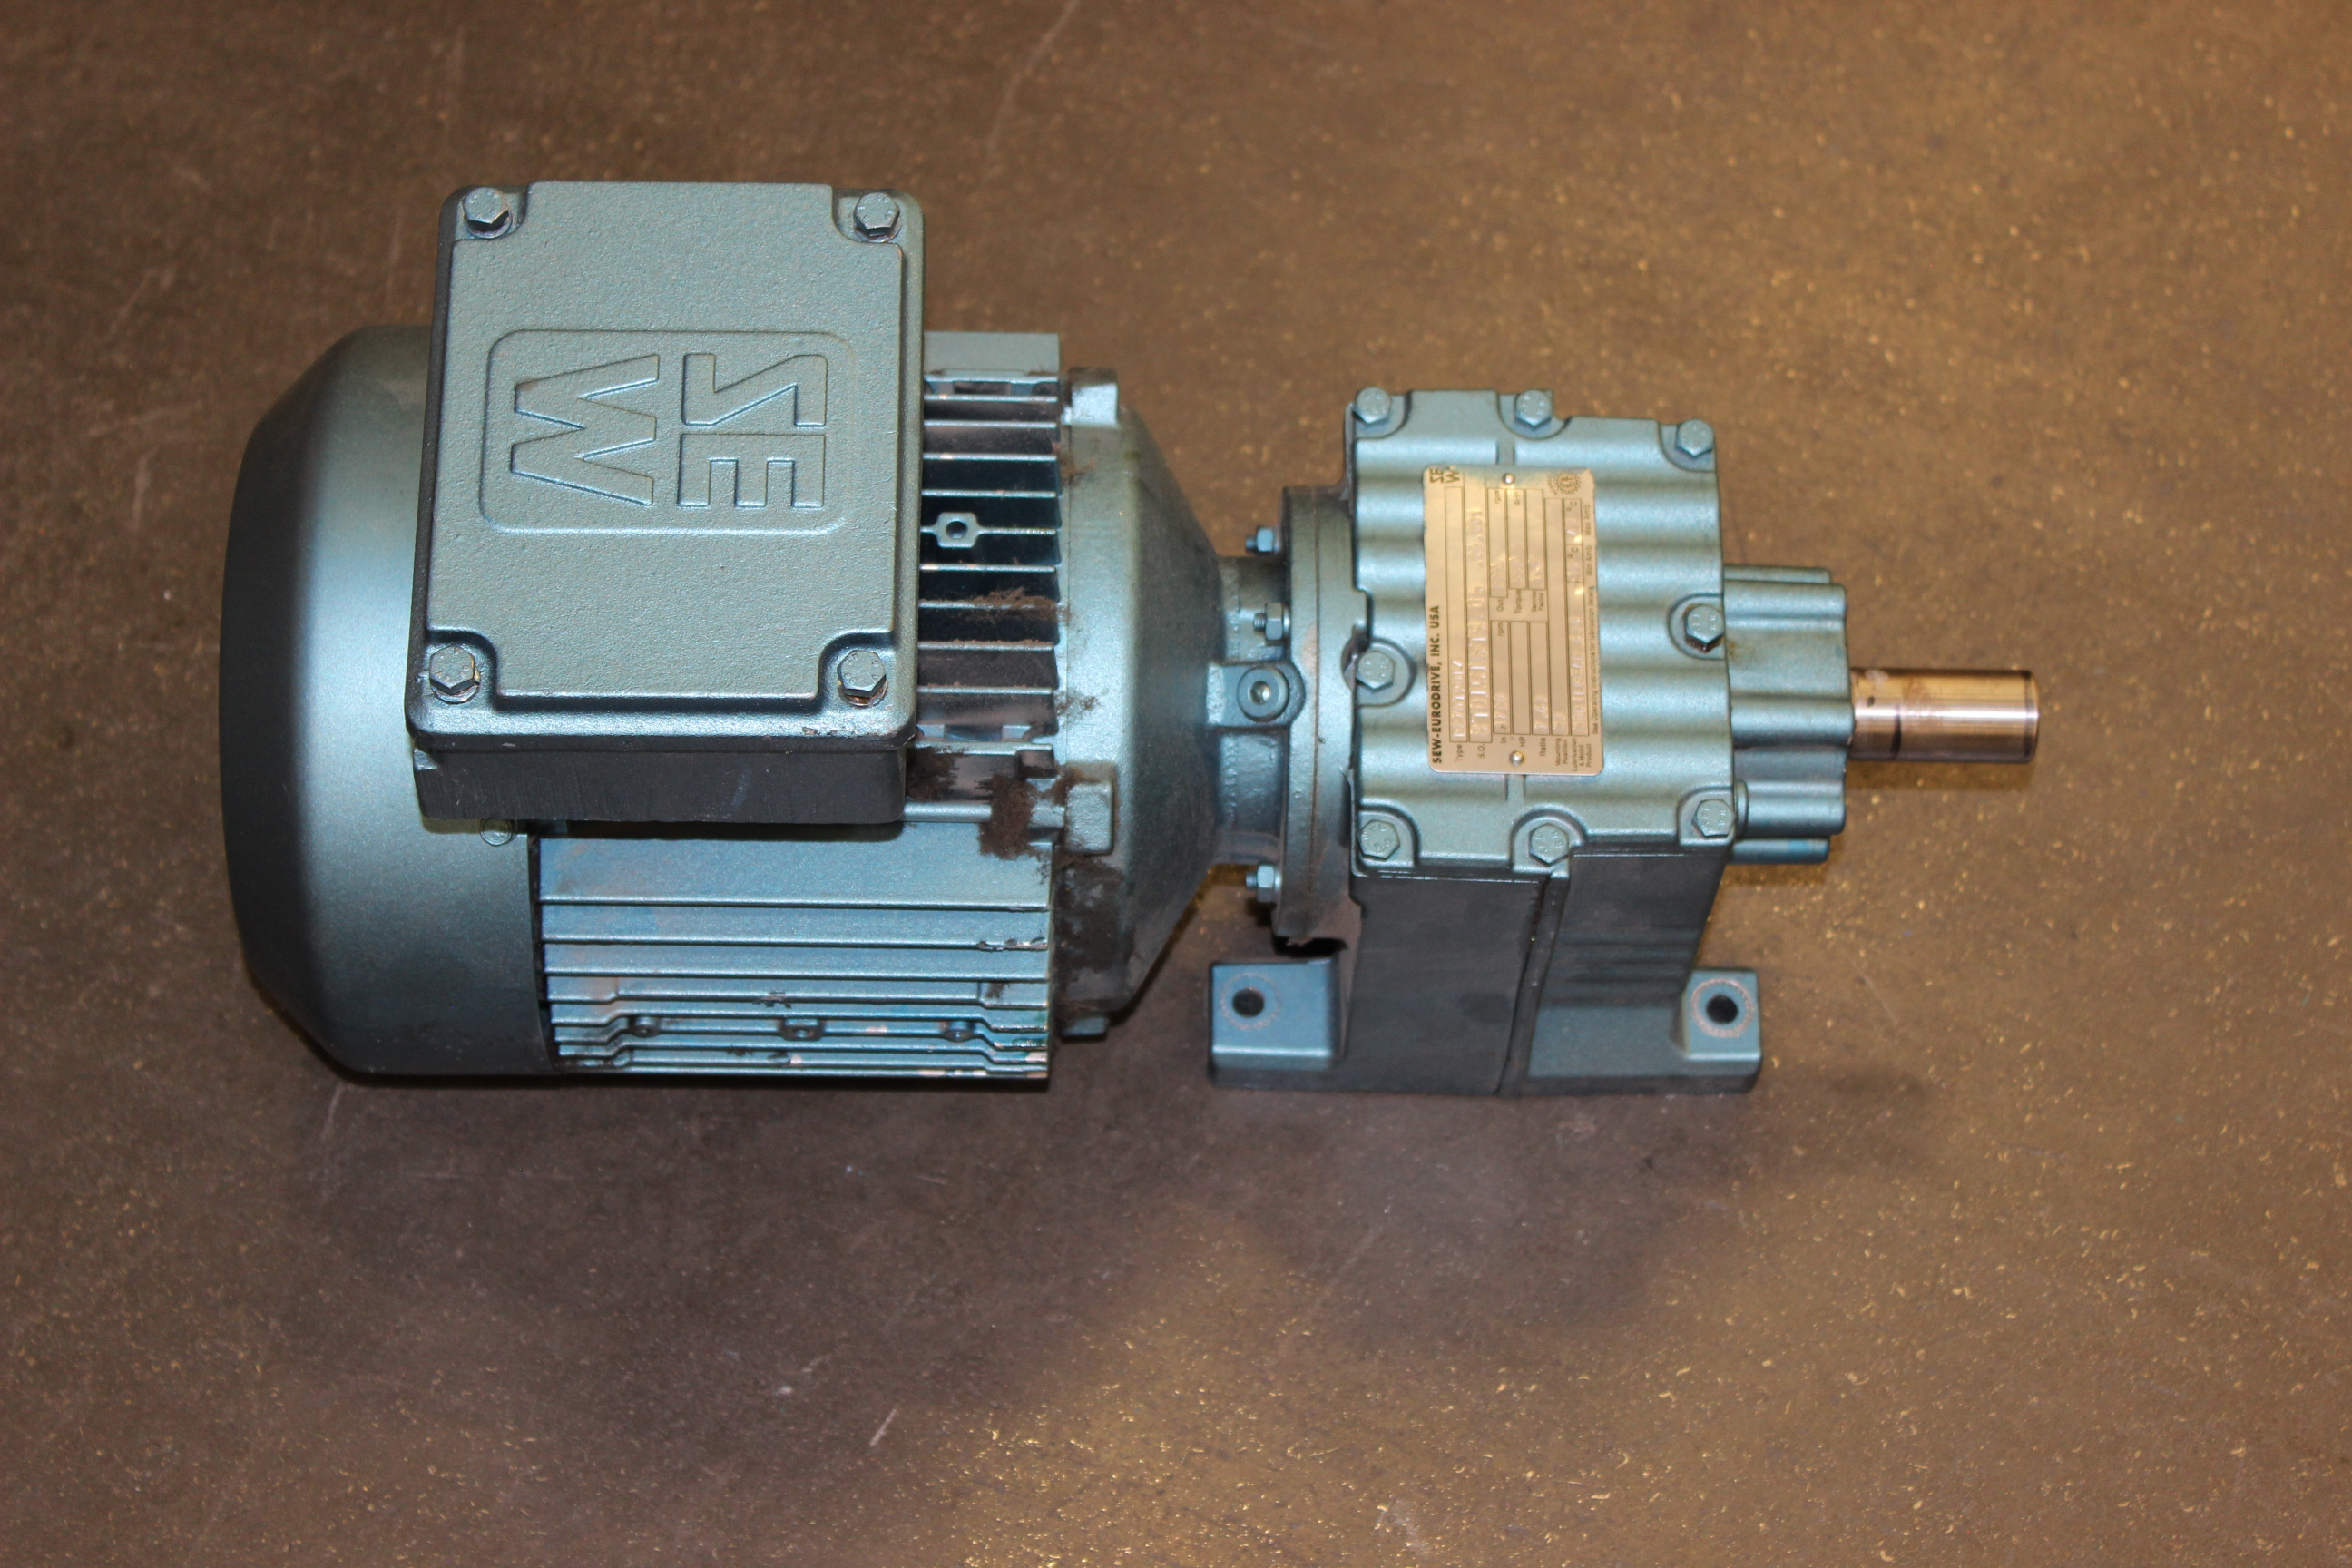 Sew eurodrive 2 hp motor with gearbox type dft98l4 volts for 2 hp motor current